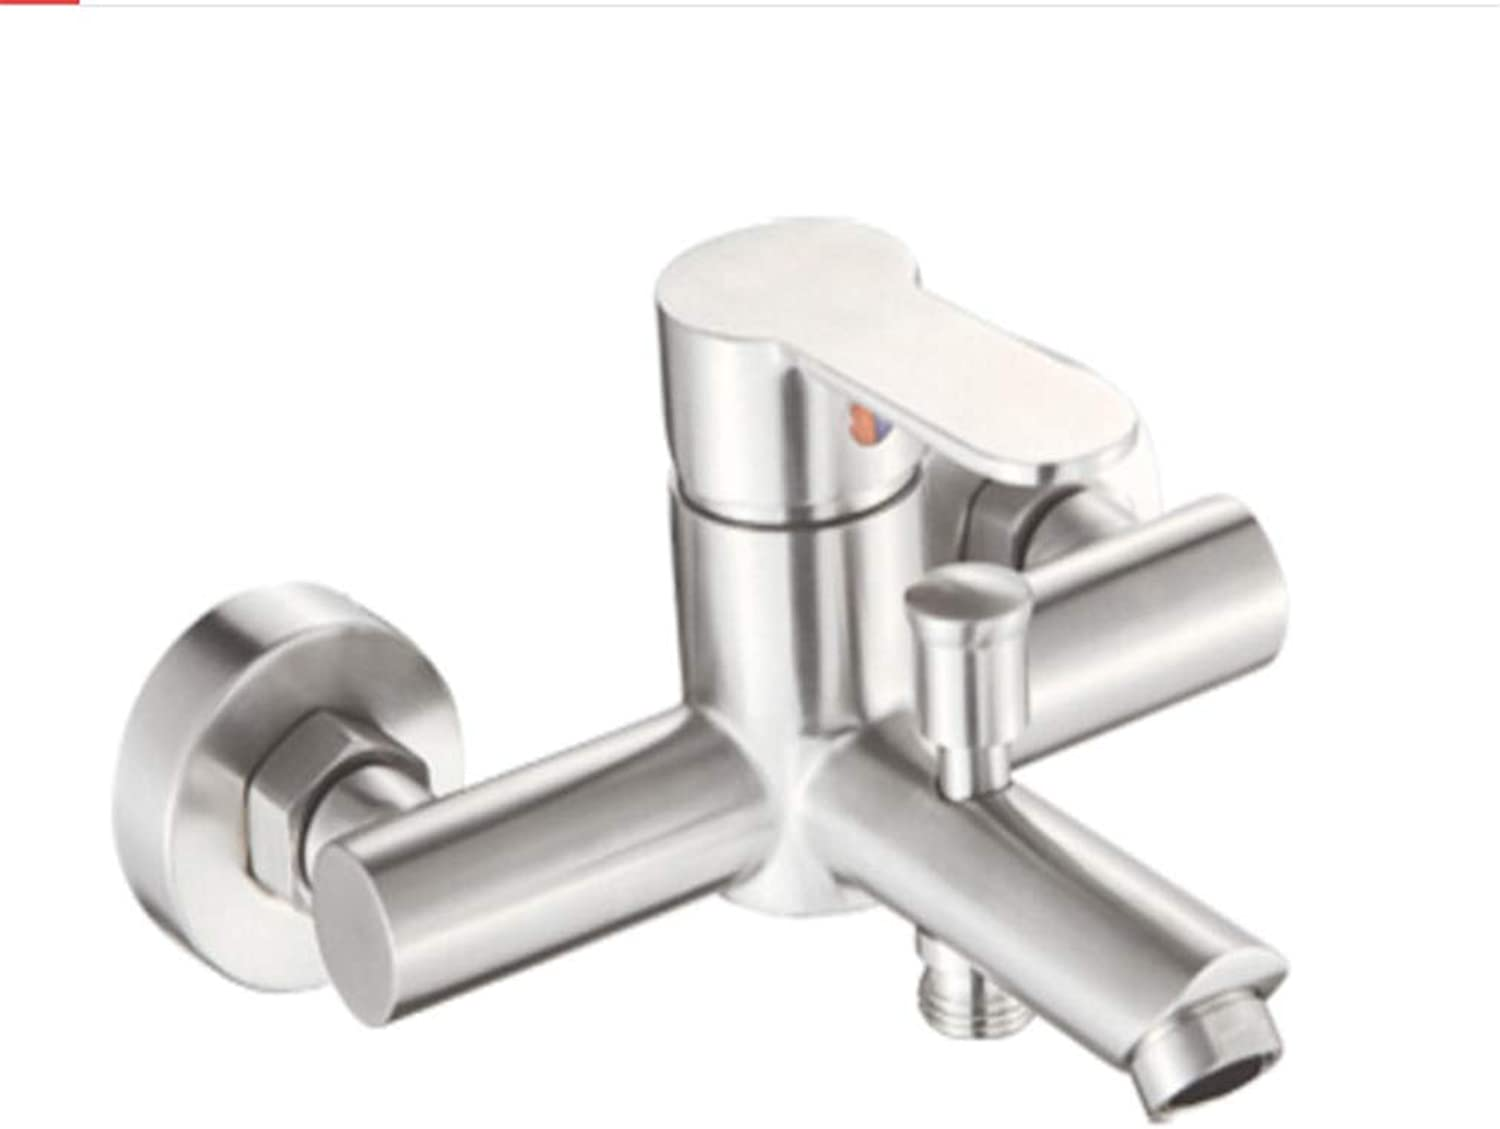 Counter Drinking Designer Archbath Faucet with Down-Flow Shower Mixer Valve